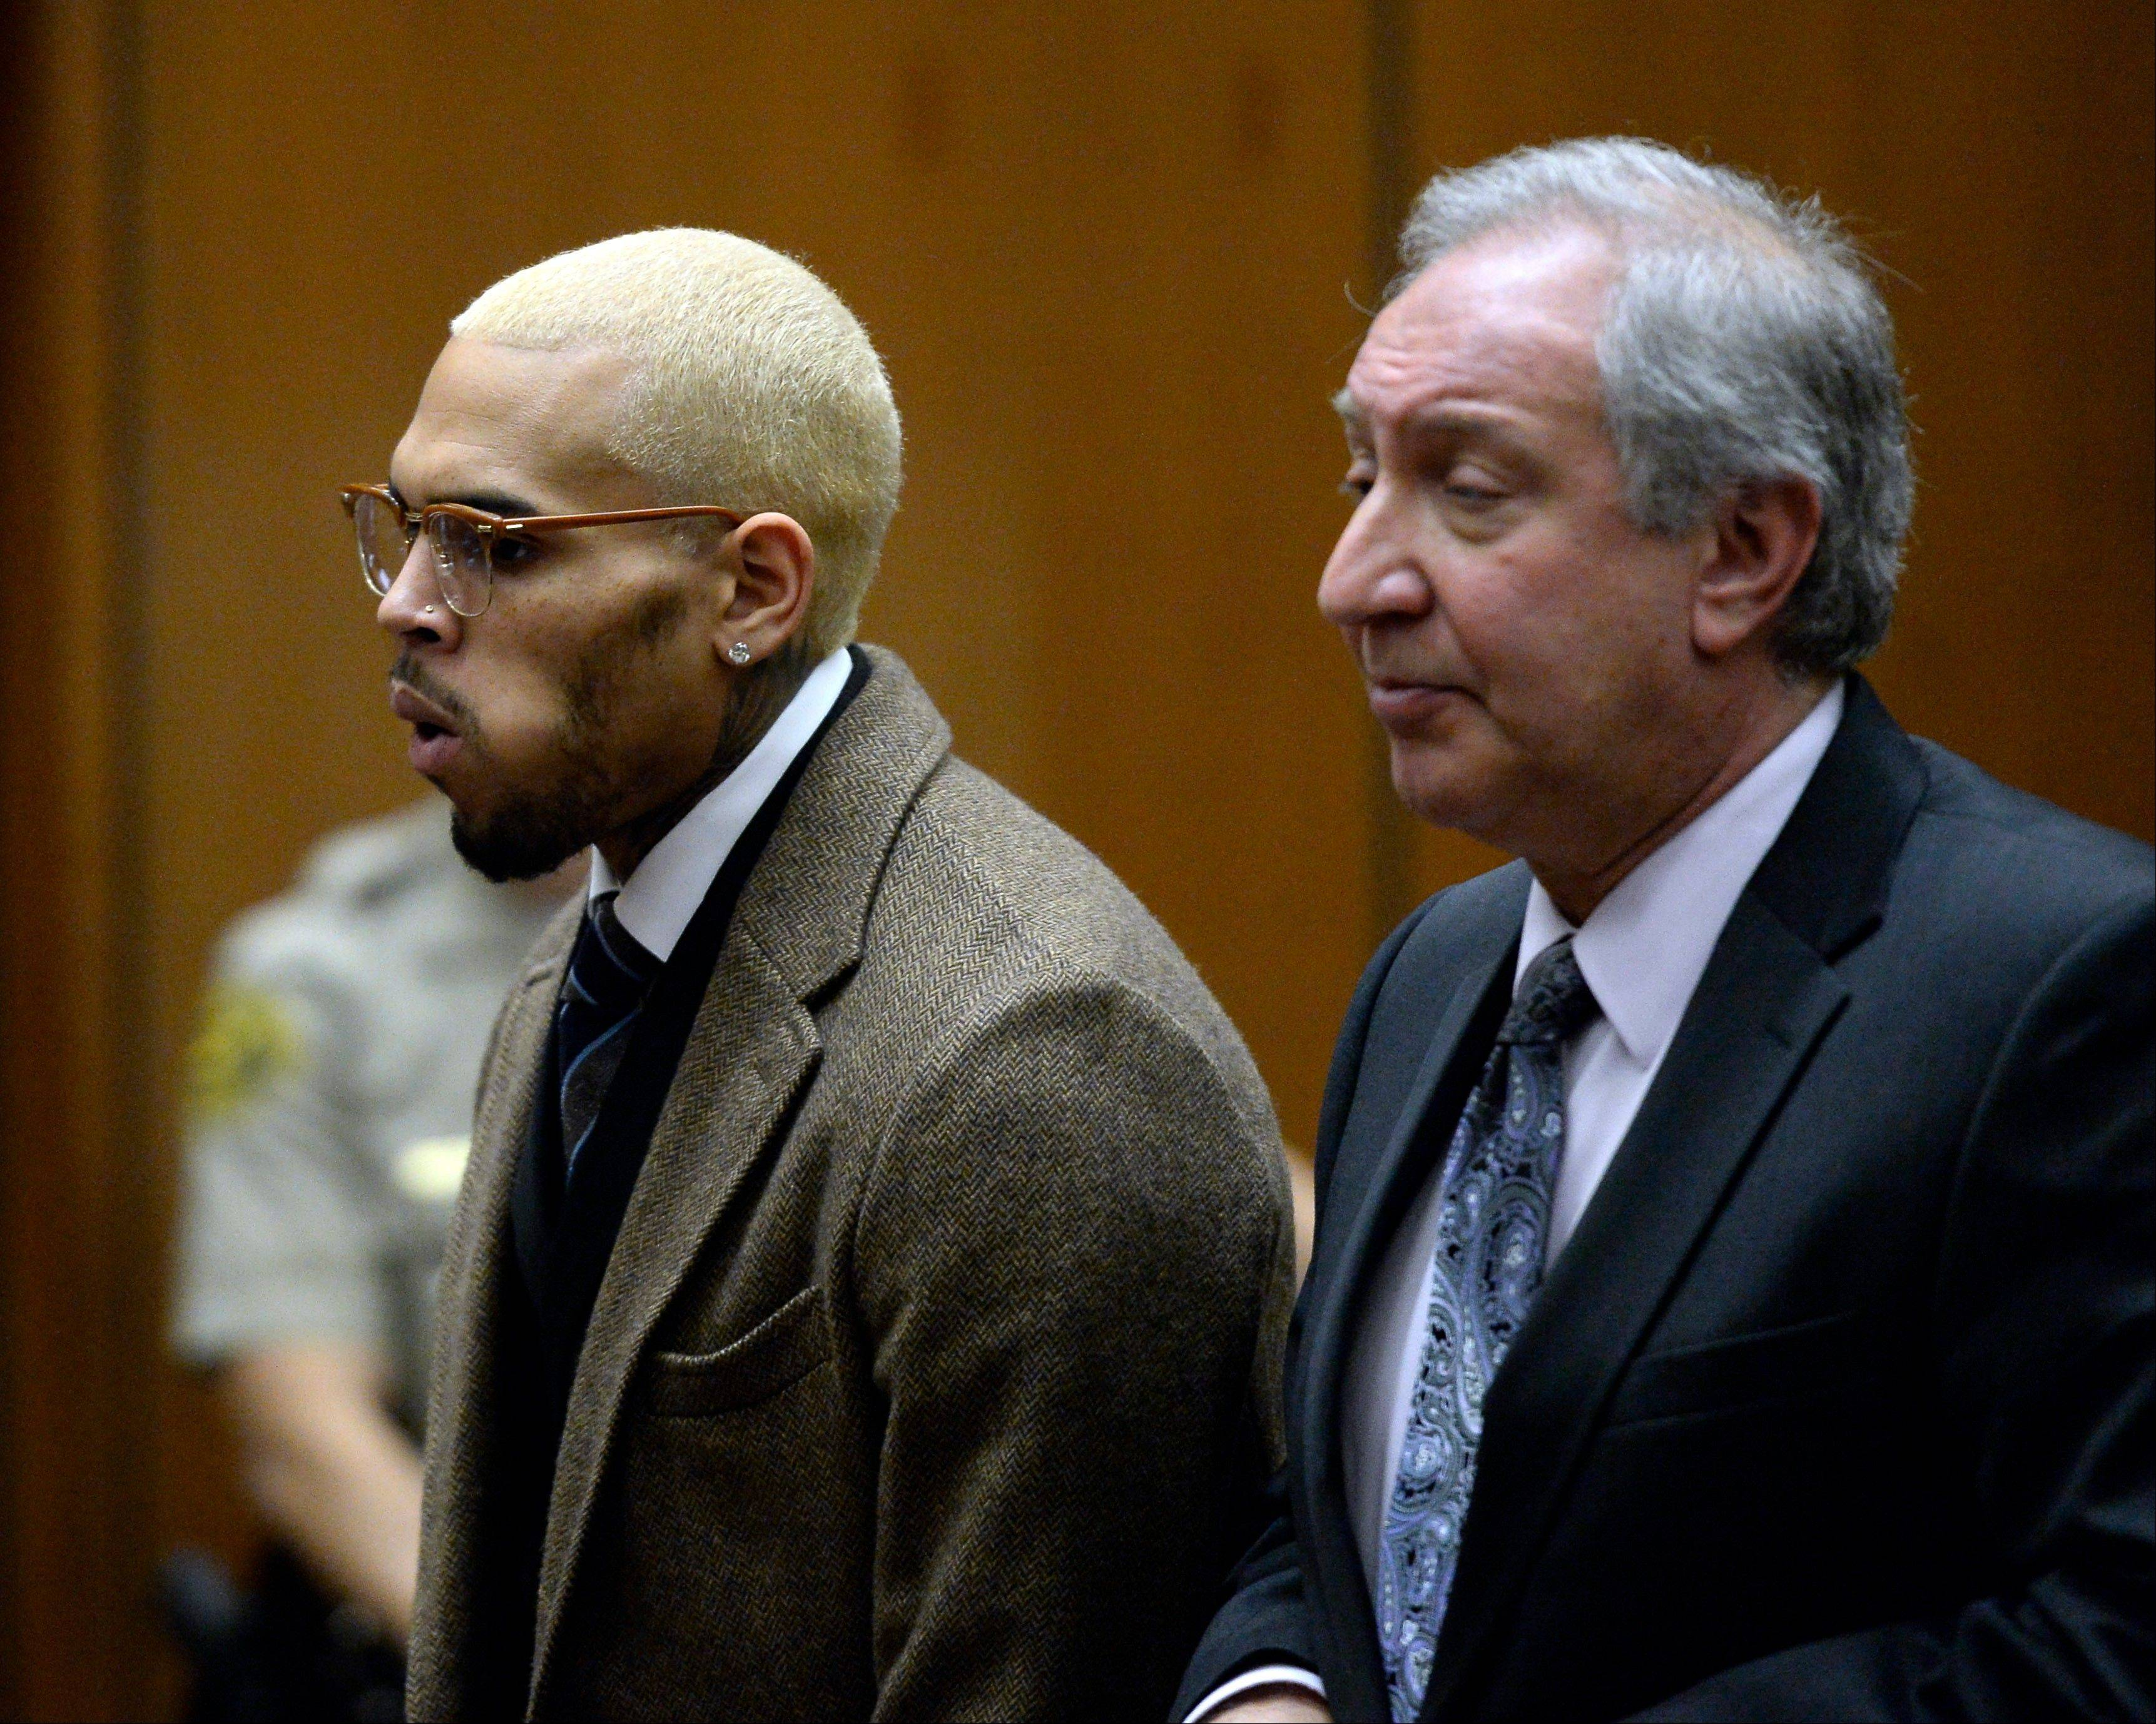 Singer Chris Brown, left, appears in court in December 2013 with his attorney Mark Geragos, in Los Angeles. Brown is expected to return to court for a status hearing in a case in which he�s accused of hitting a man outside a Washington, D.C., hotel. The R&B singer was arrested in October after a man said the singer hit him outside the W Hotel. Brown and his bodyguard each face a misdemeanor assault charge.